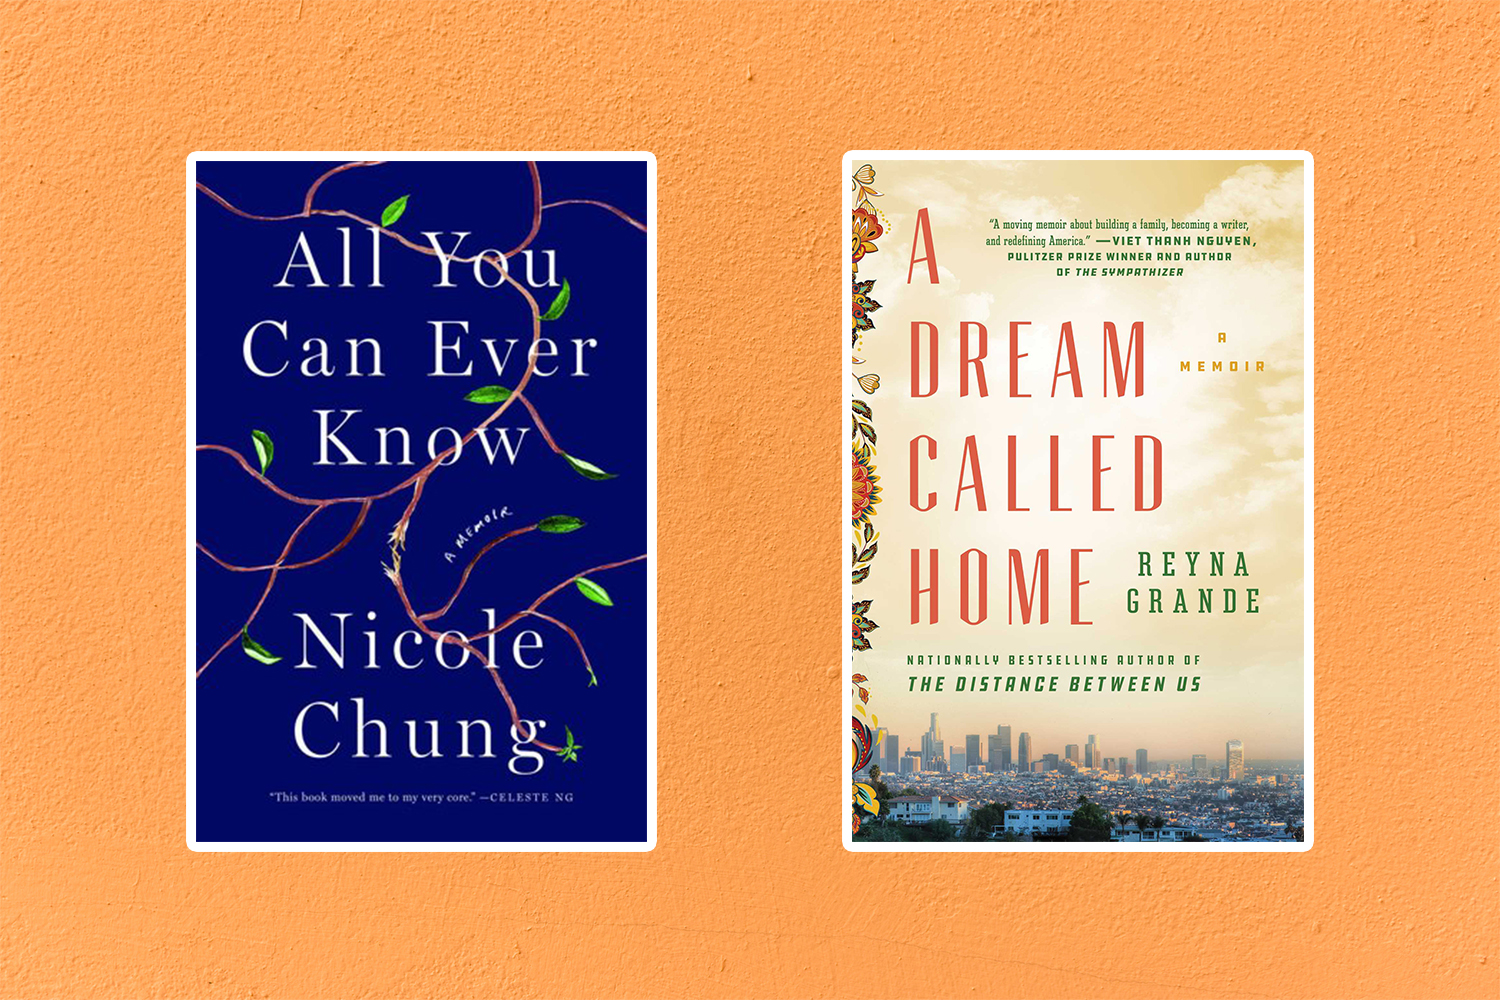 Books coming out this week: <em>All You Can Ever Know</em>, <em>A Dream Called Home</em>, and more